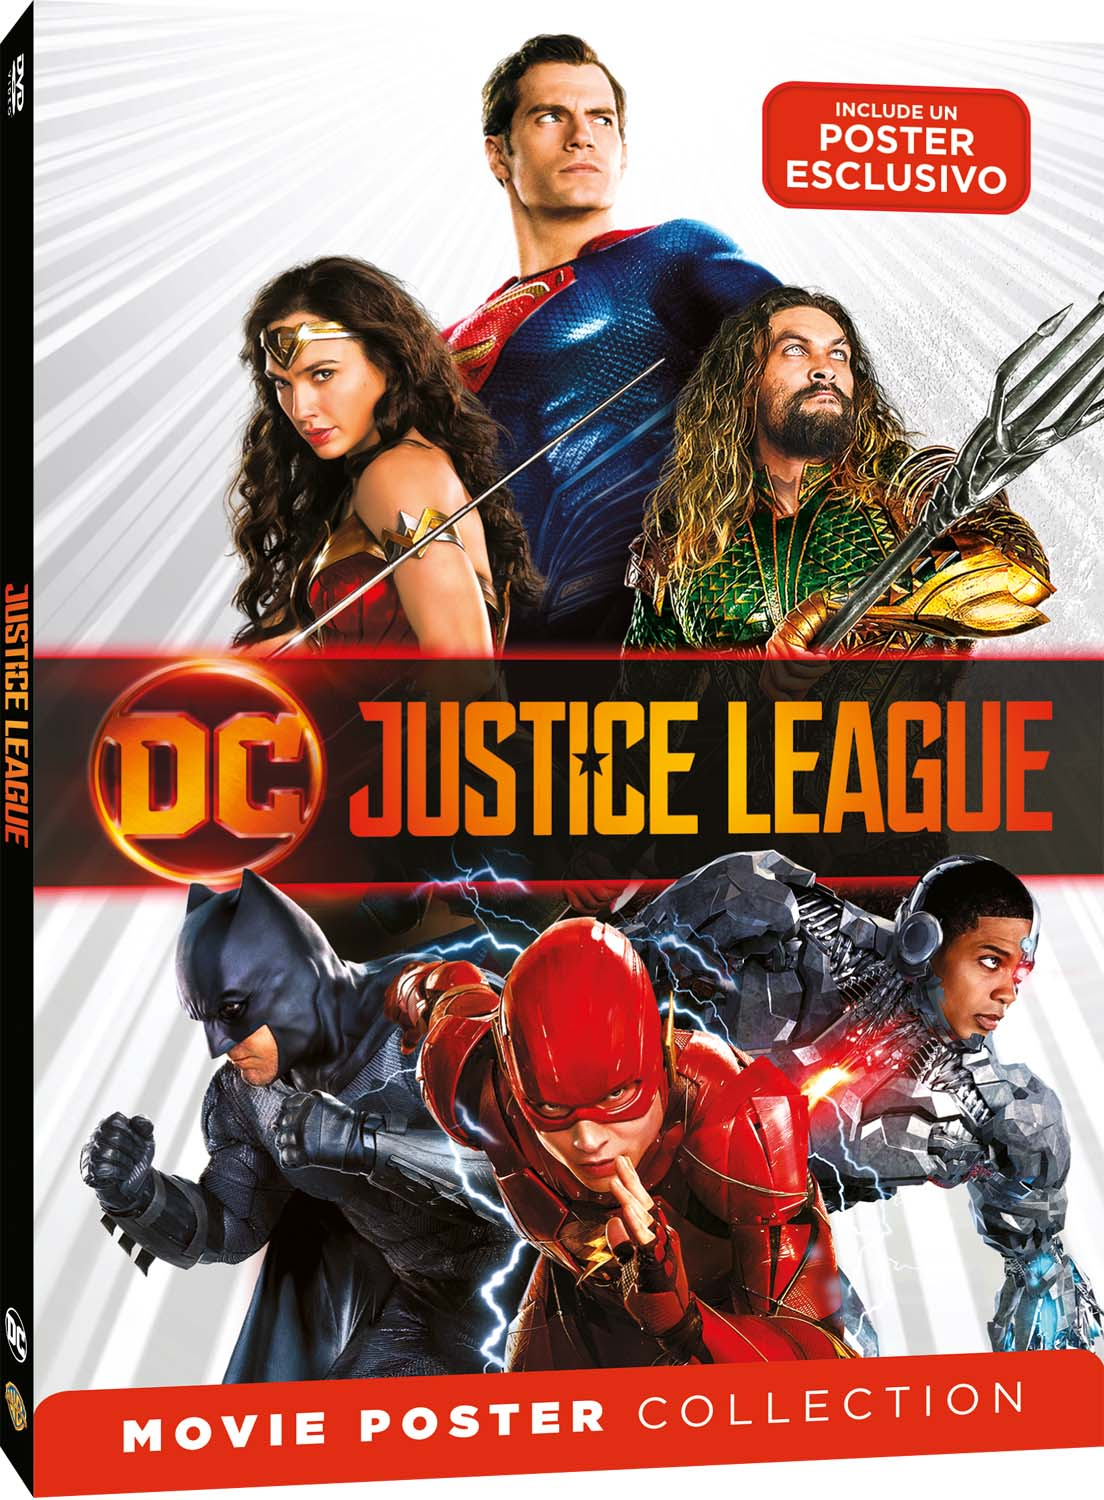 JUSTICE LEAGUE - MOVIE POSTER EDITION (DVD)